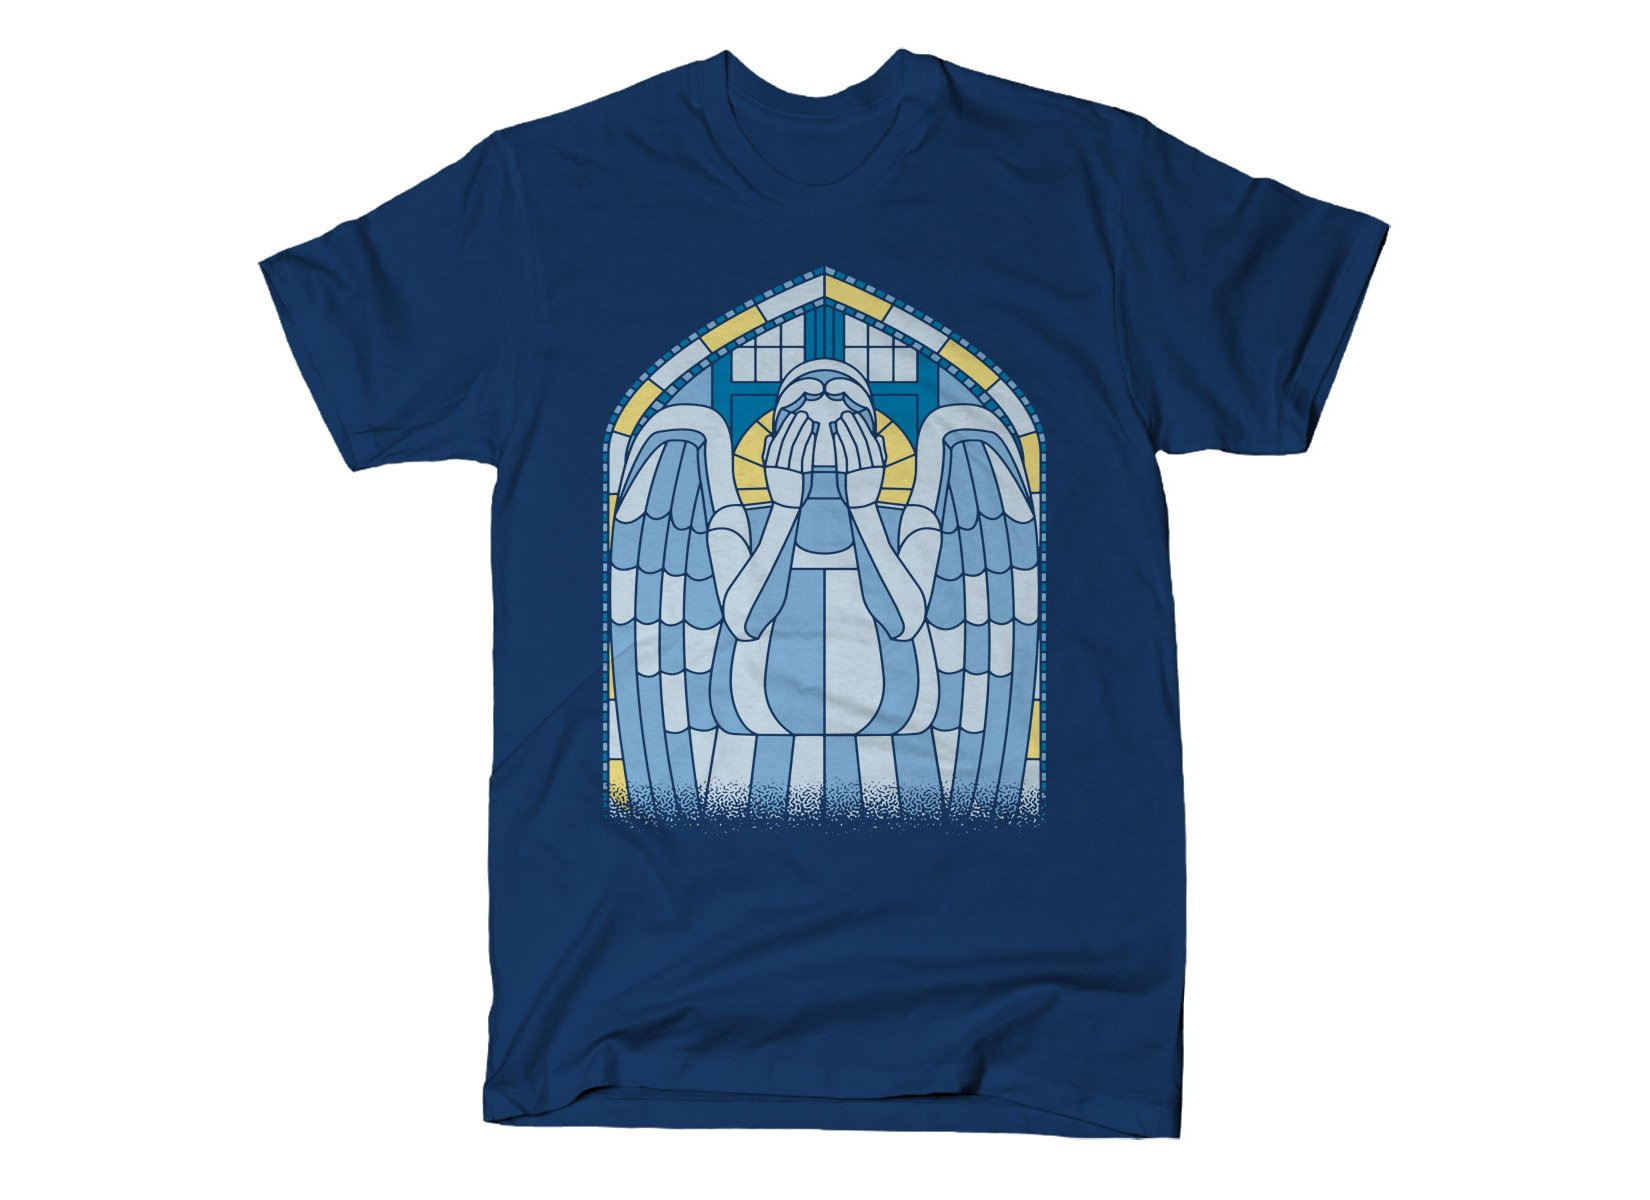 Weeping Angel on Mens T-Shirt